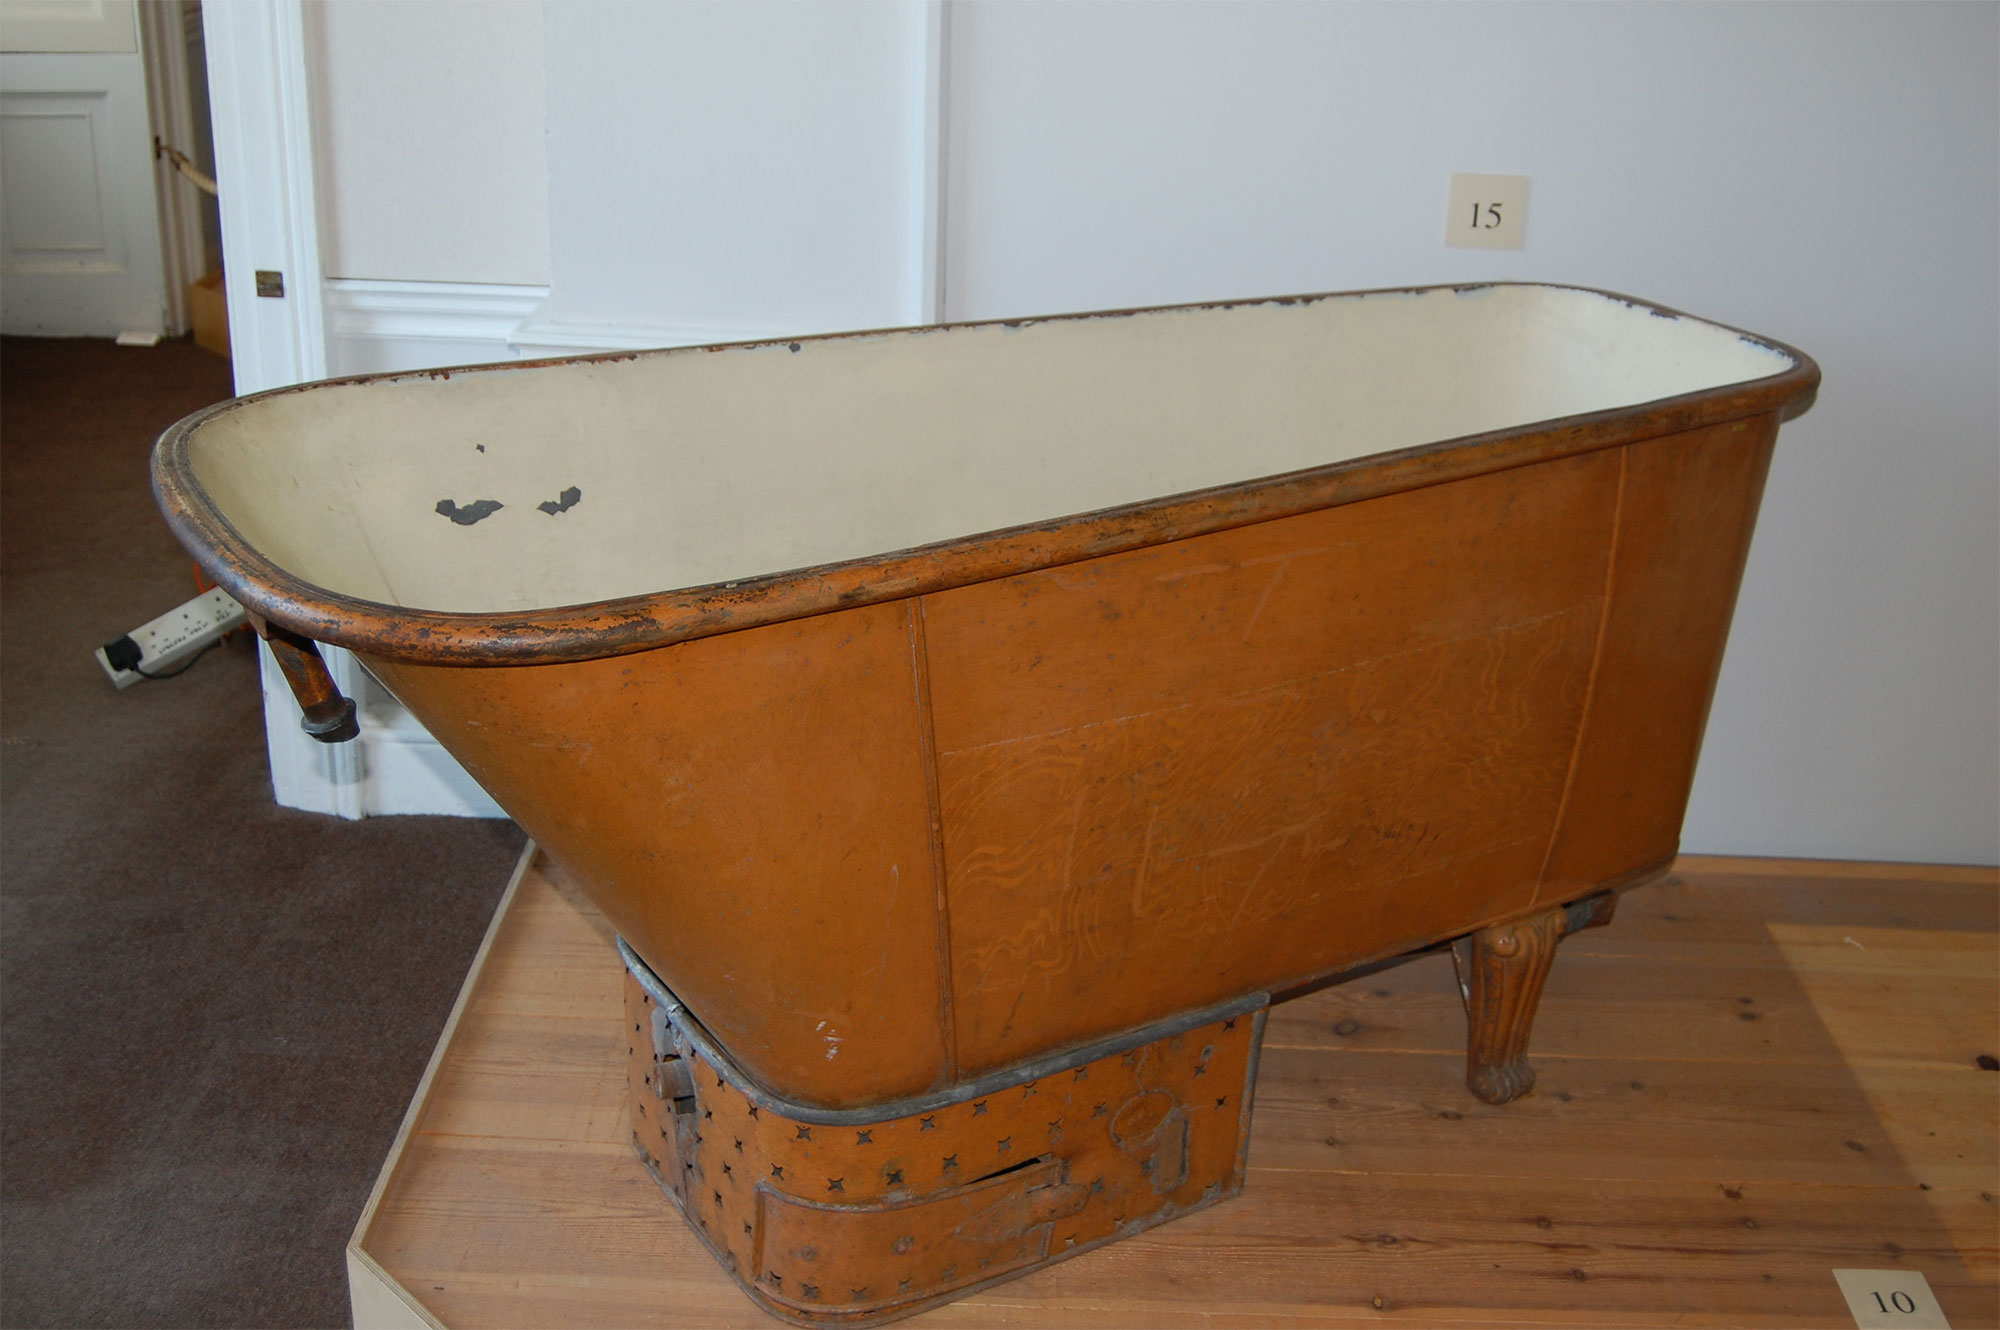 Gas bath originally installed at Clevedon Court and now in Blaise Castle Museum